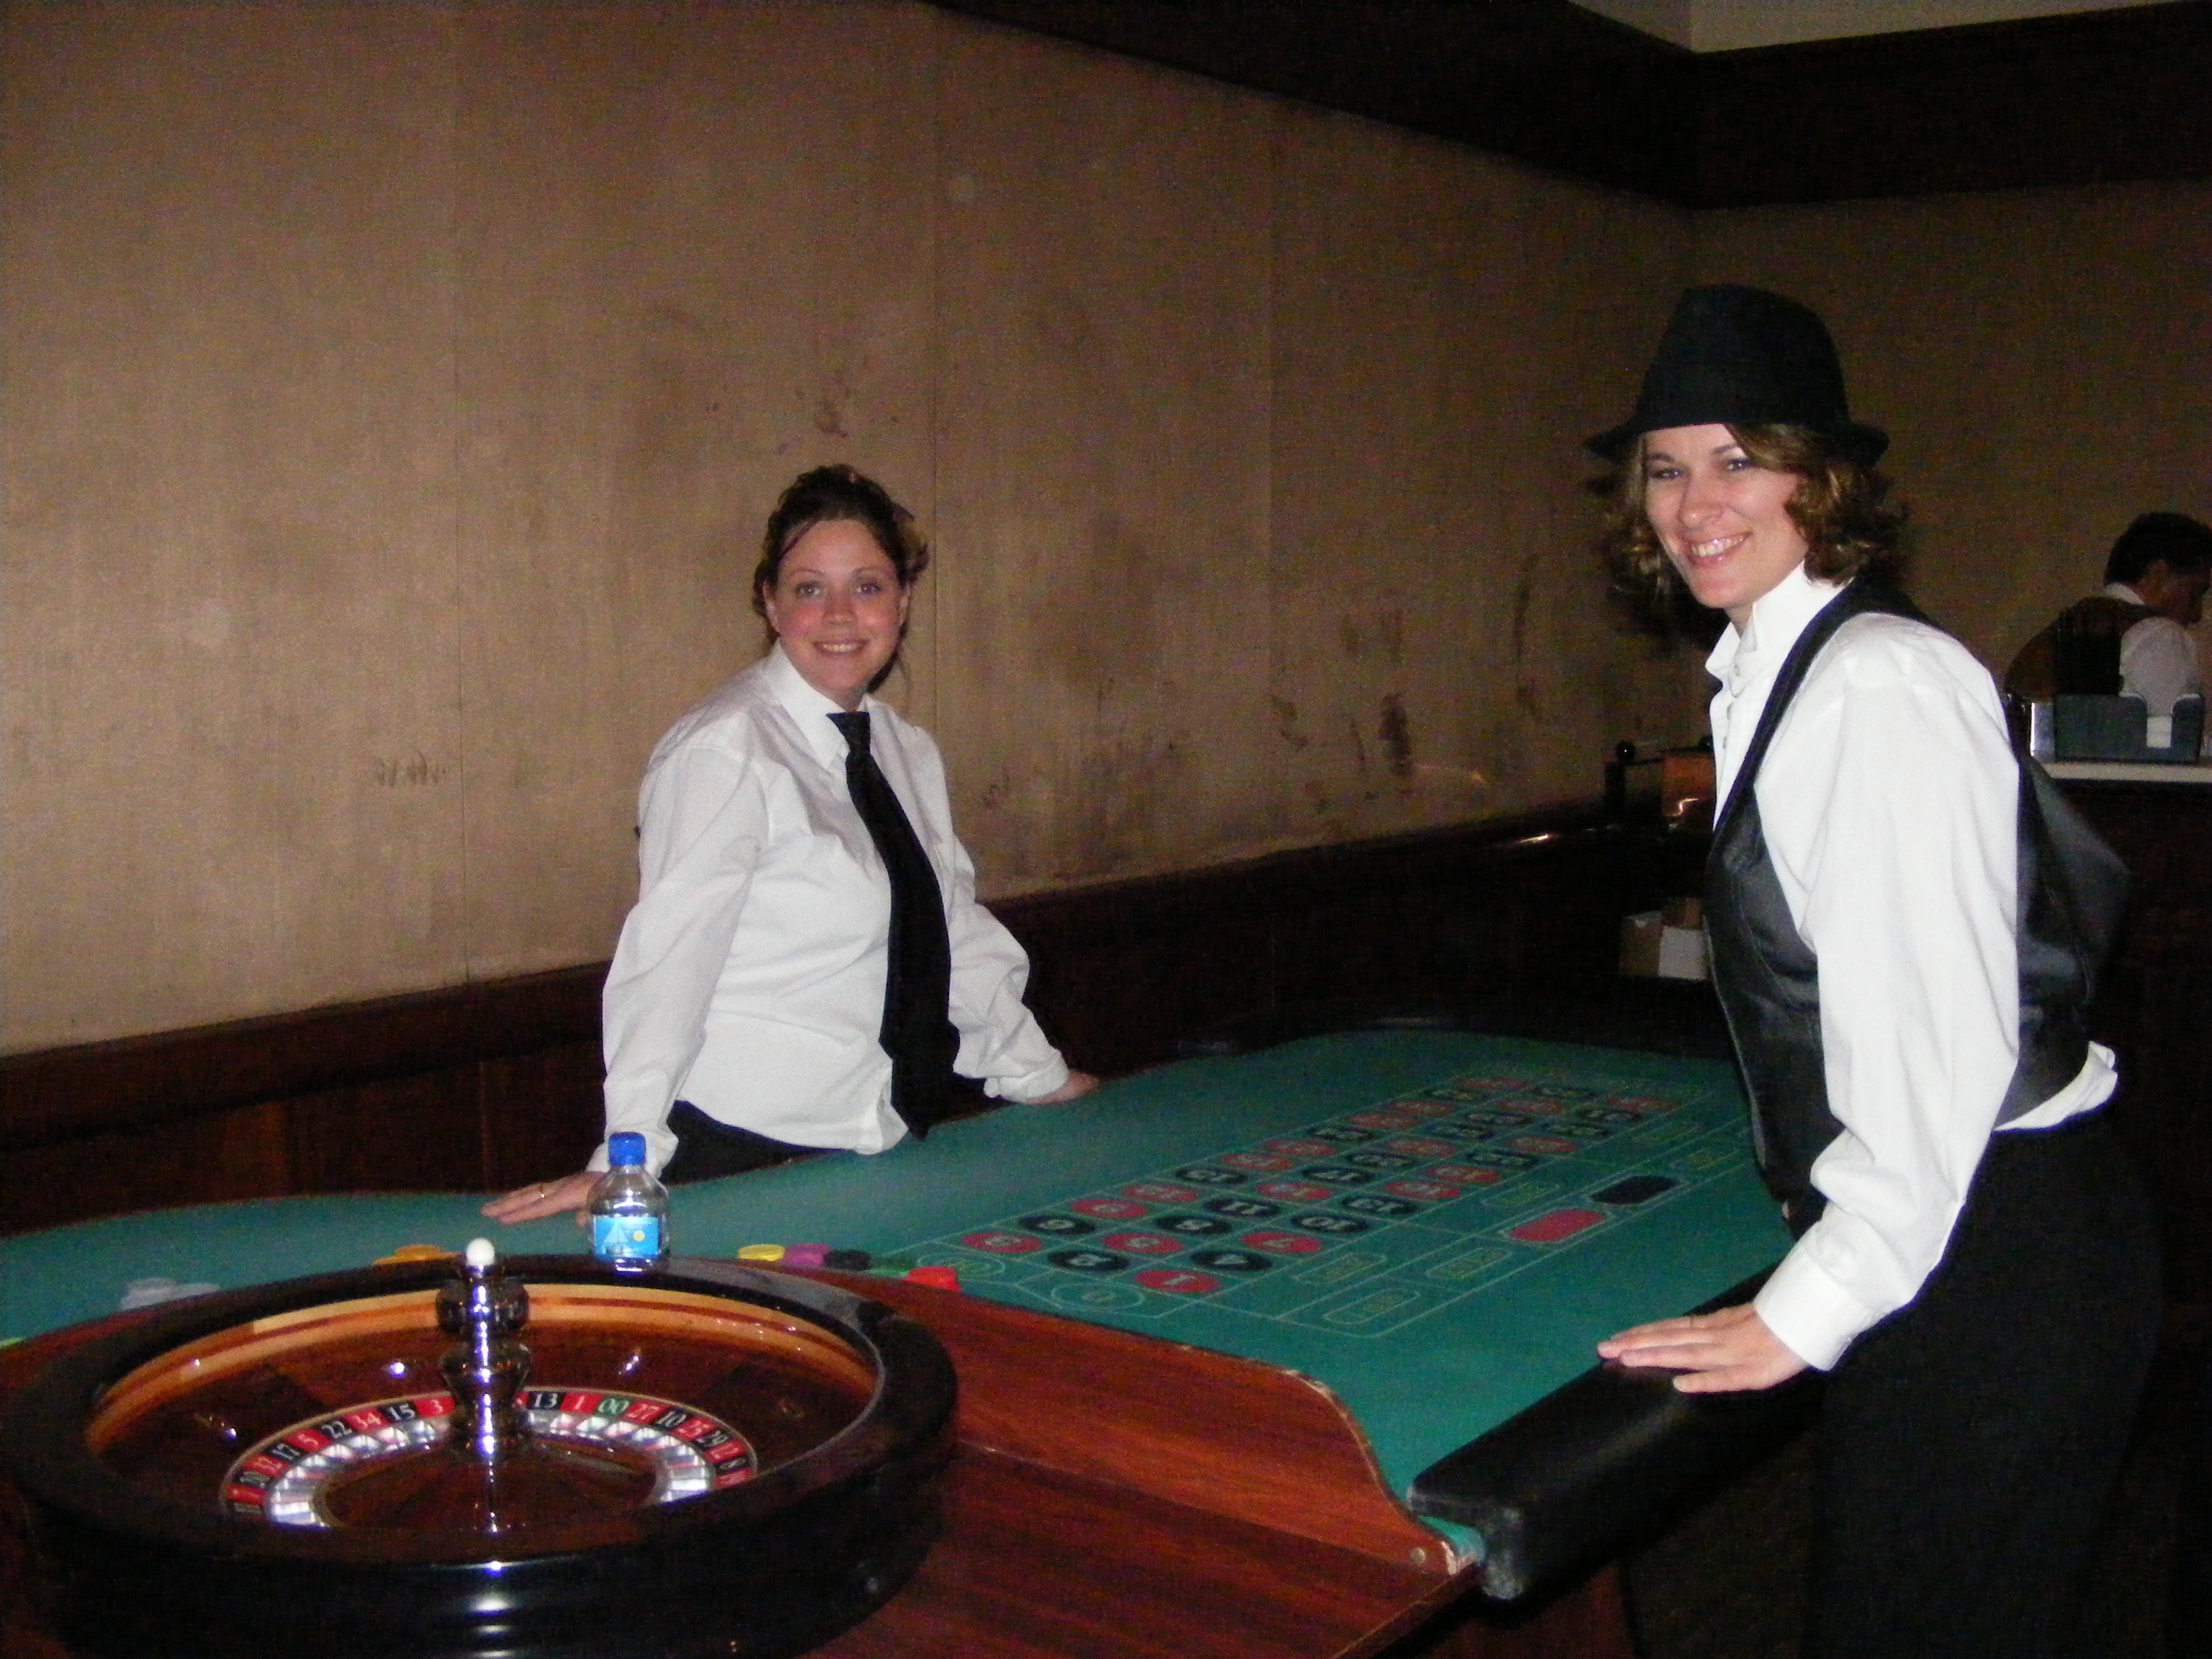 Casino games for events